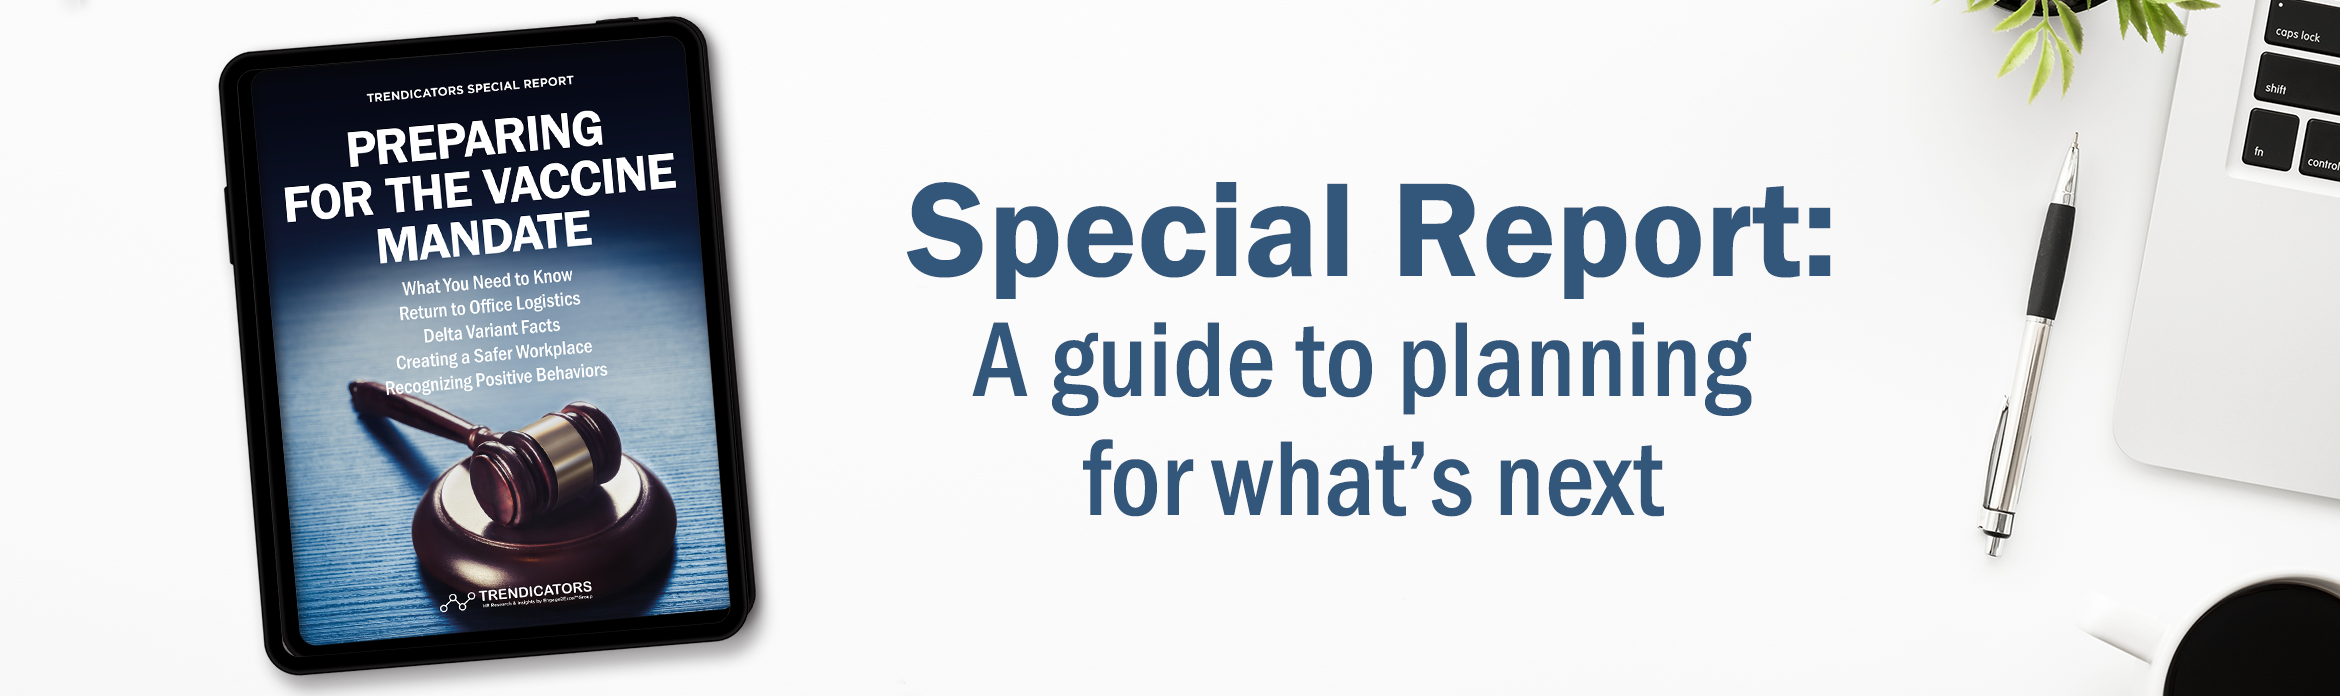 Special Report: A guide to planning for what's next